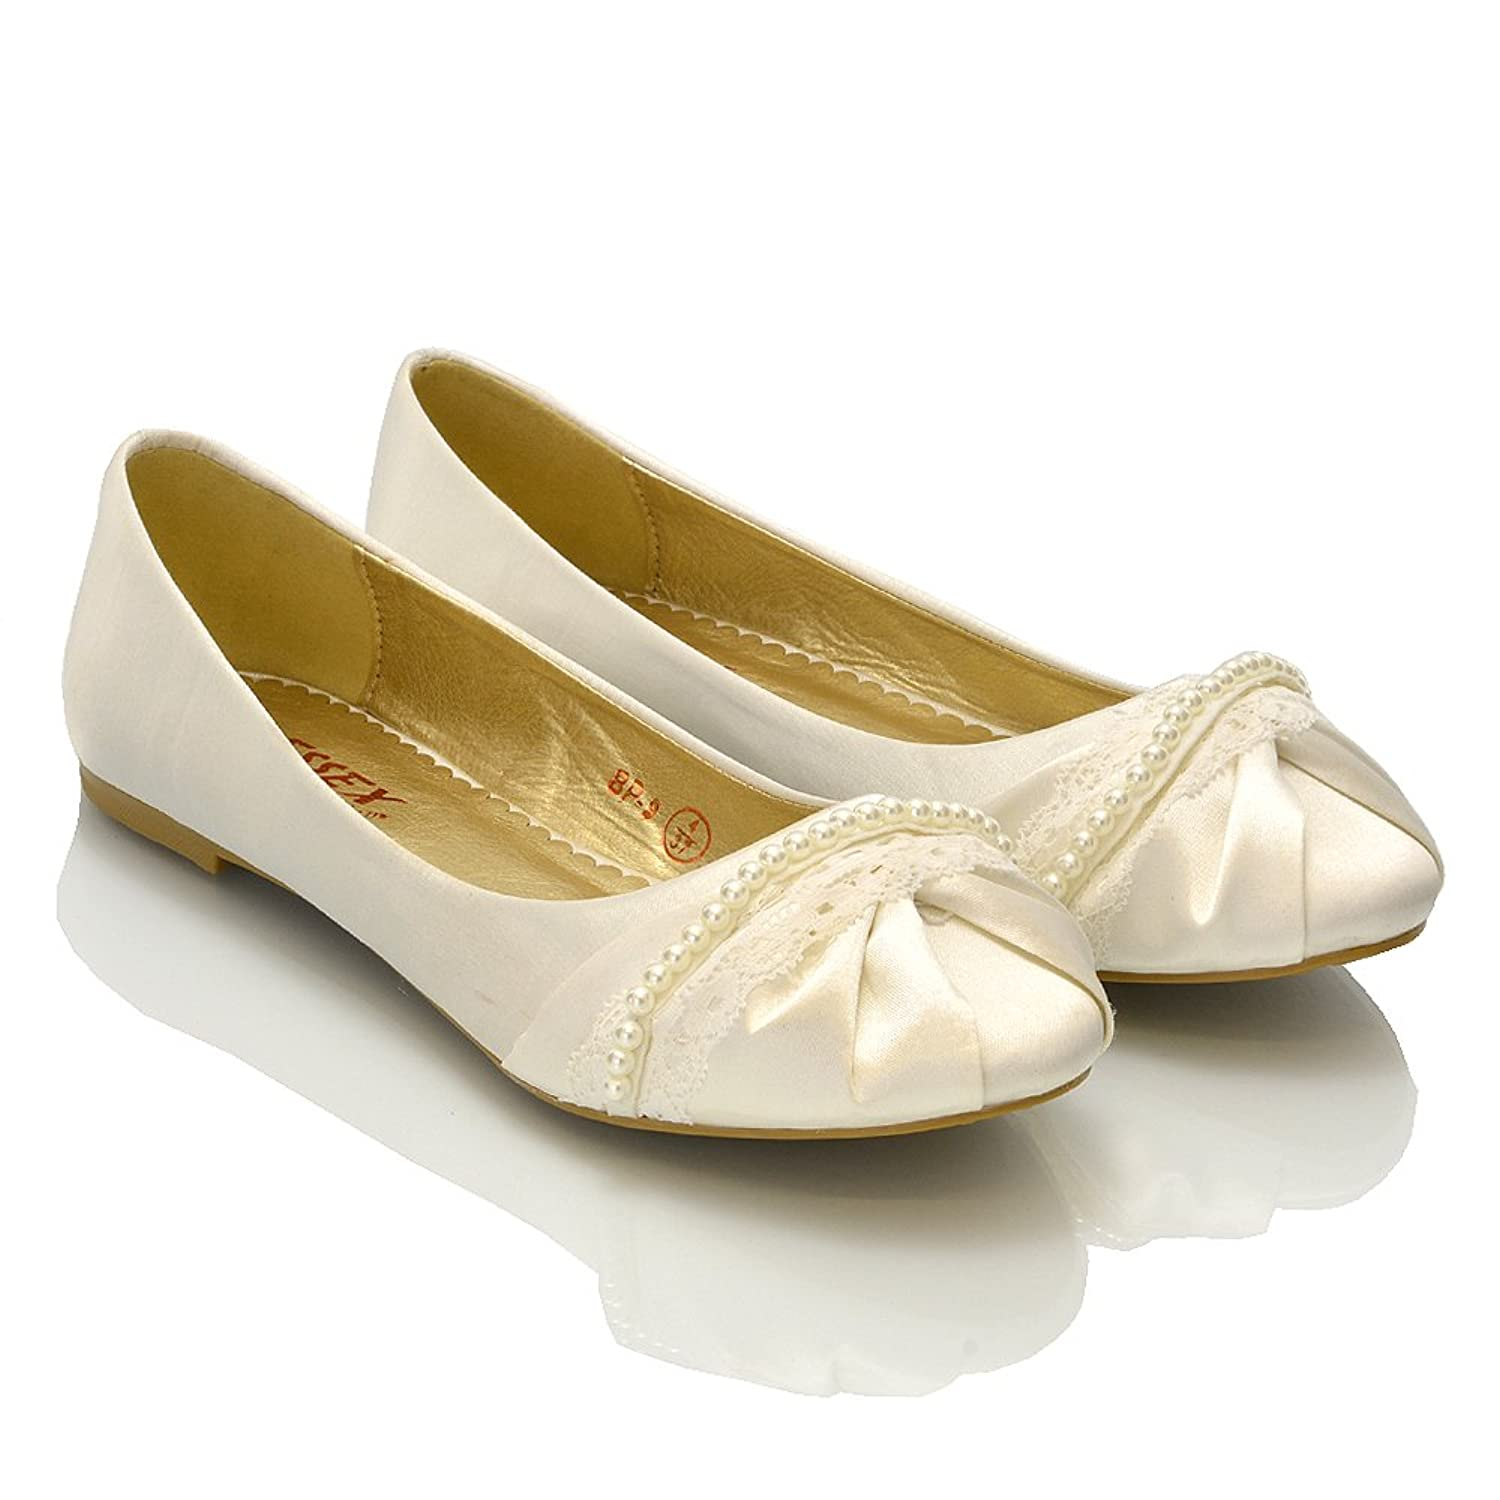 Essex Glam - Damen Ballerinas Mit Perlen & Spitze - Satin, 8 UK / 41 EU / 10 US, Weiß Satin